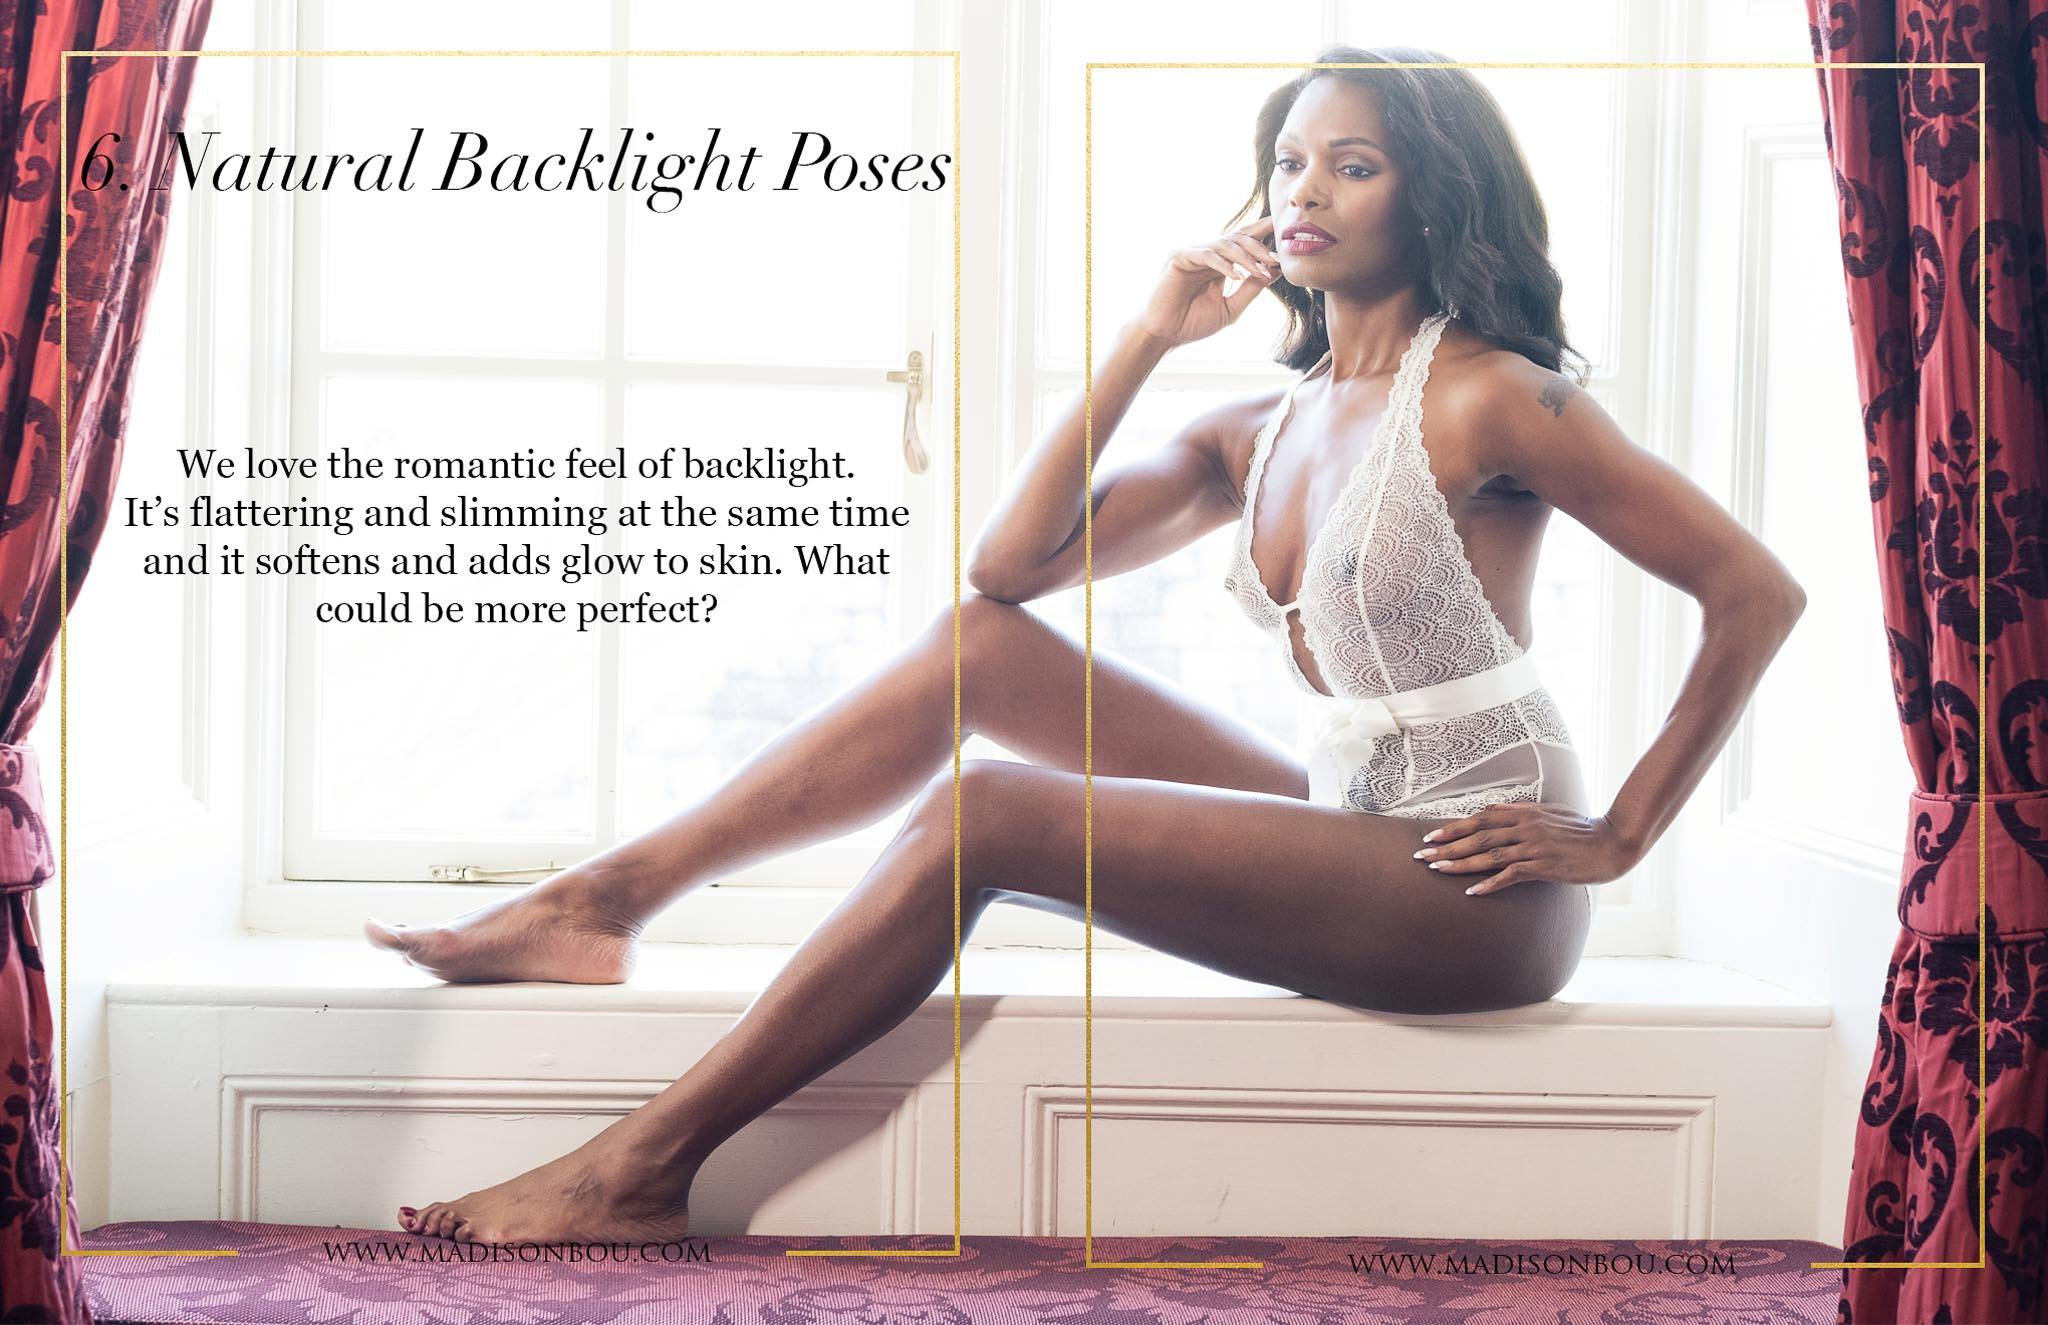 6-natural-backlight-poses-top 10 boudoir poses